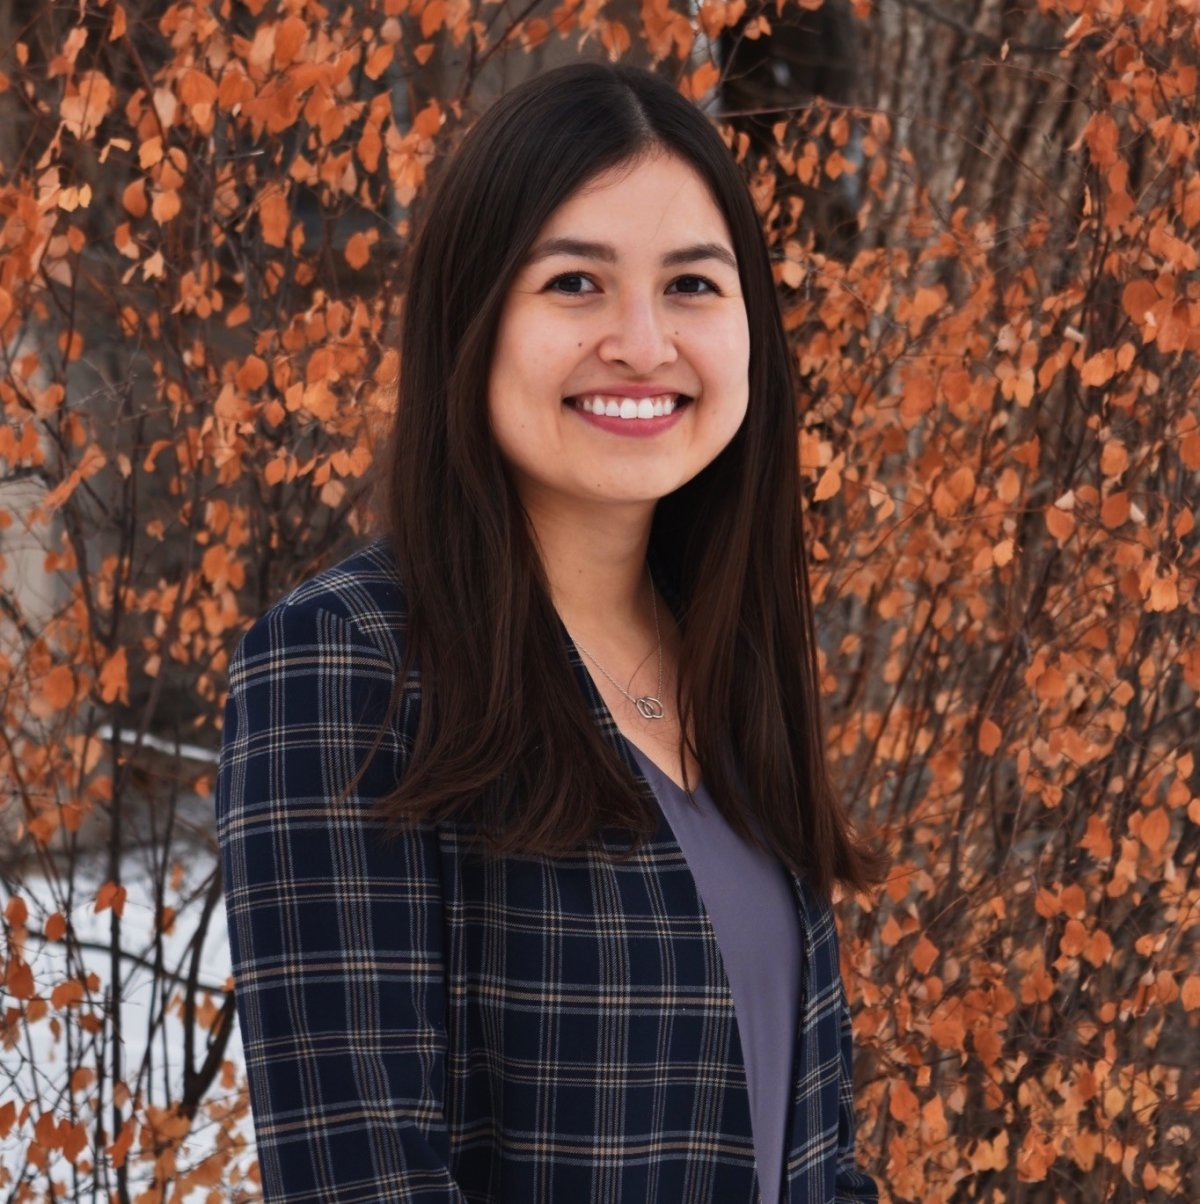 Brooke Cochrane, 26, will be the first medical doctor to come from Fisher River Cree Nation.